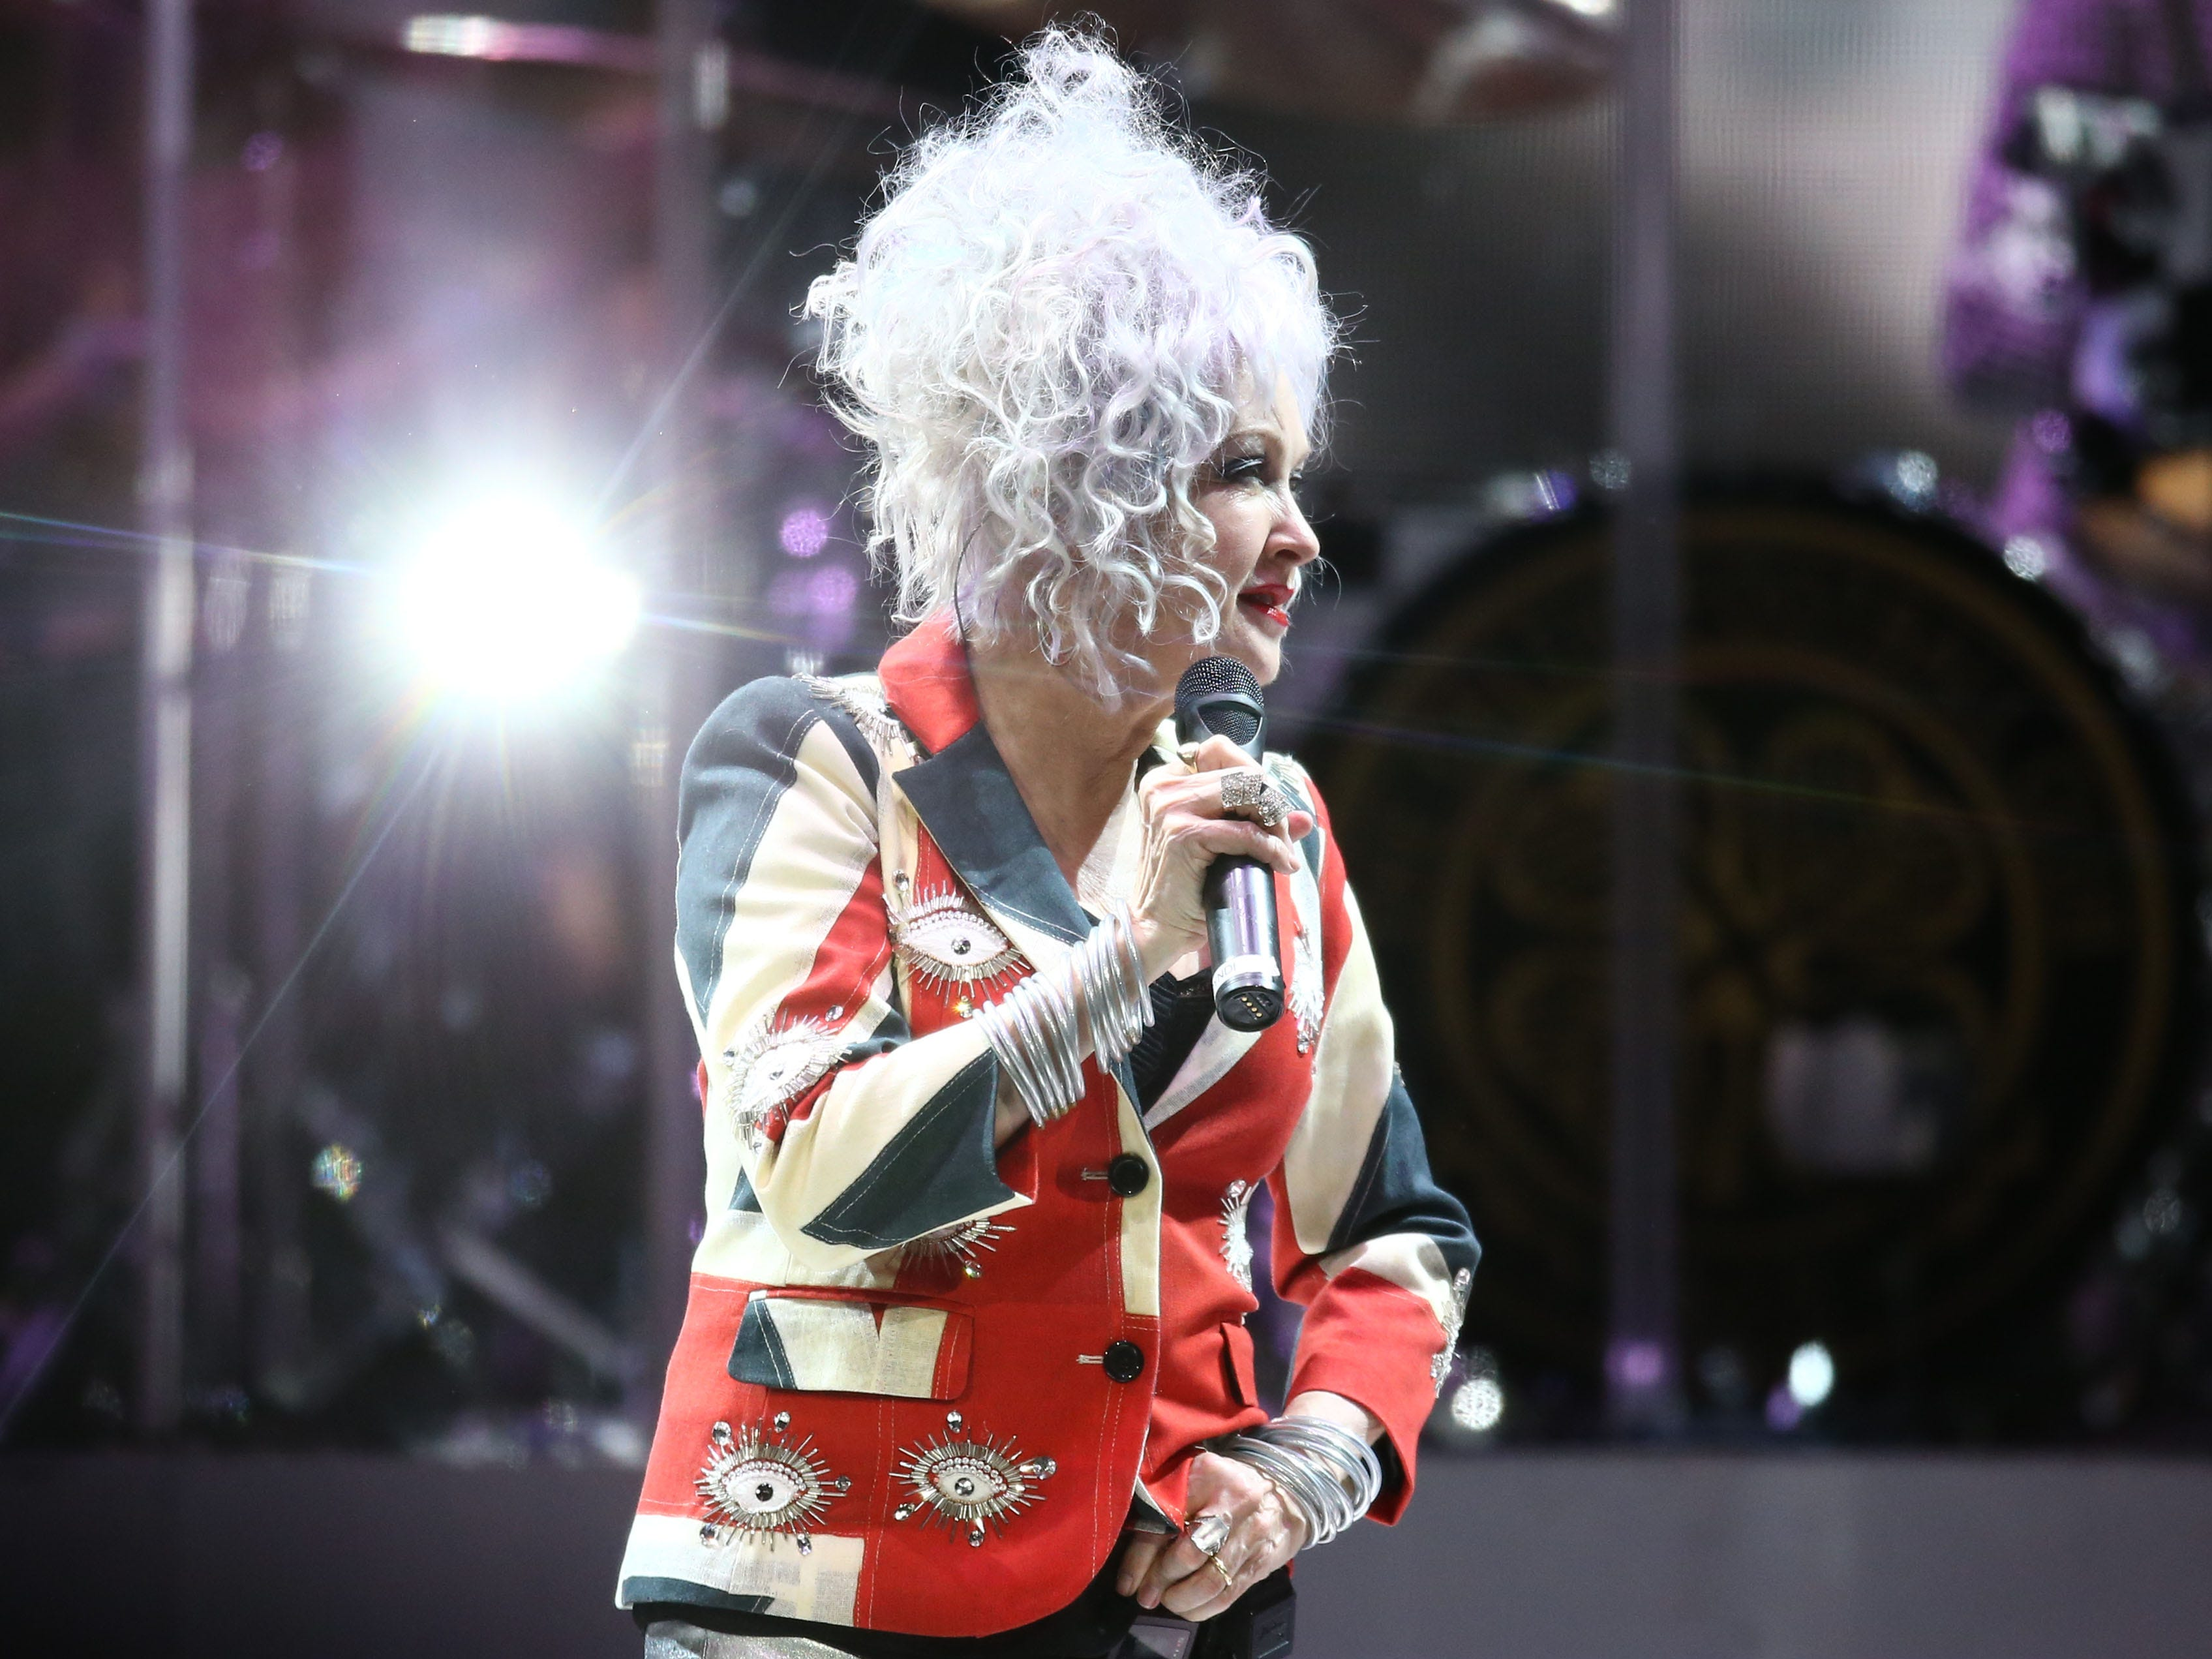 Cyndi Lauper performs on Aug. 24, 2018, at Talking Stick Resort Arena in Phoenix, Ariz.